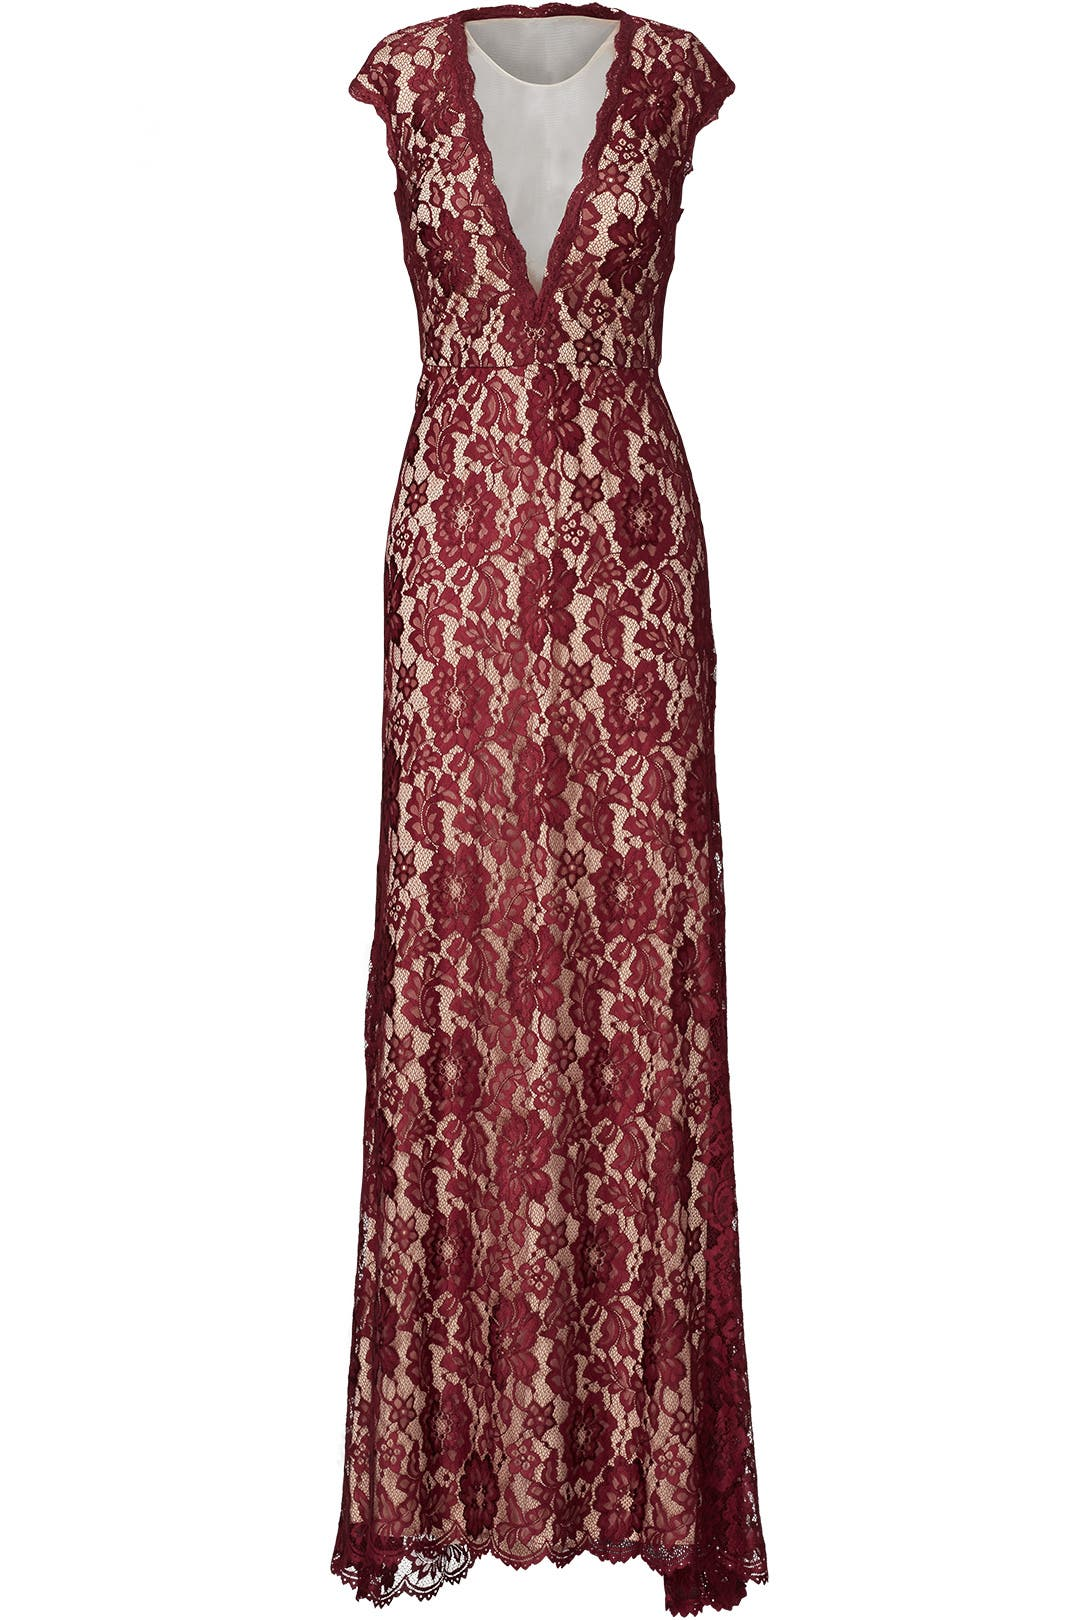 Maroon Romantic Ride Gown by LM Collection for $50 - $70   Rent the ...